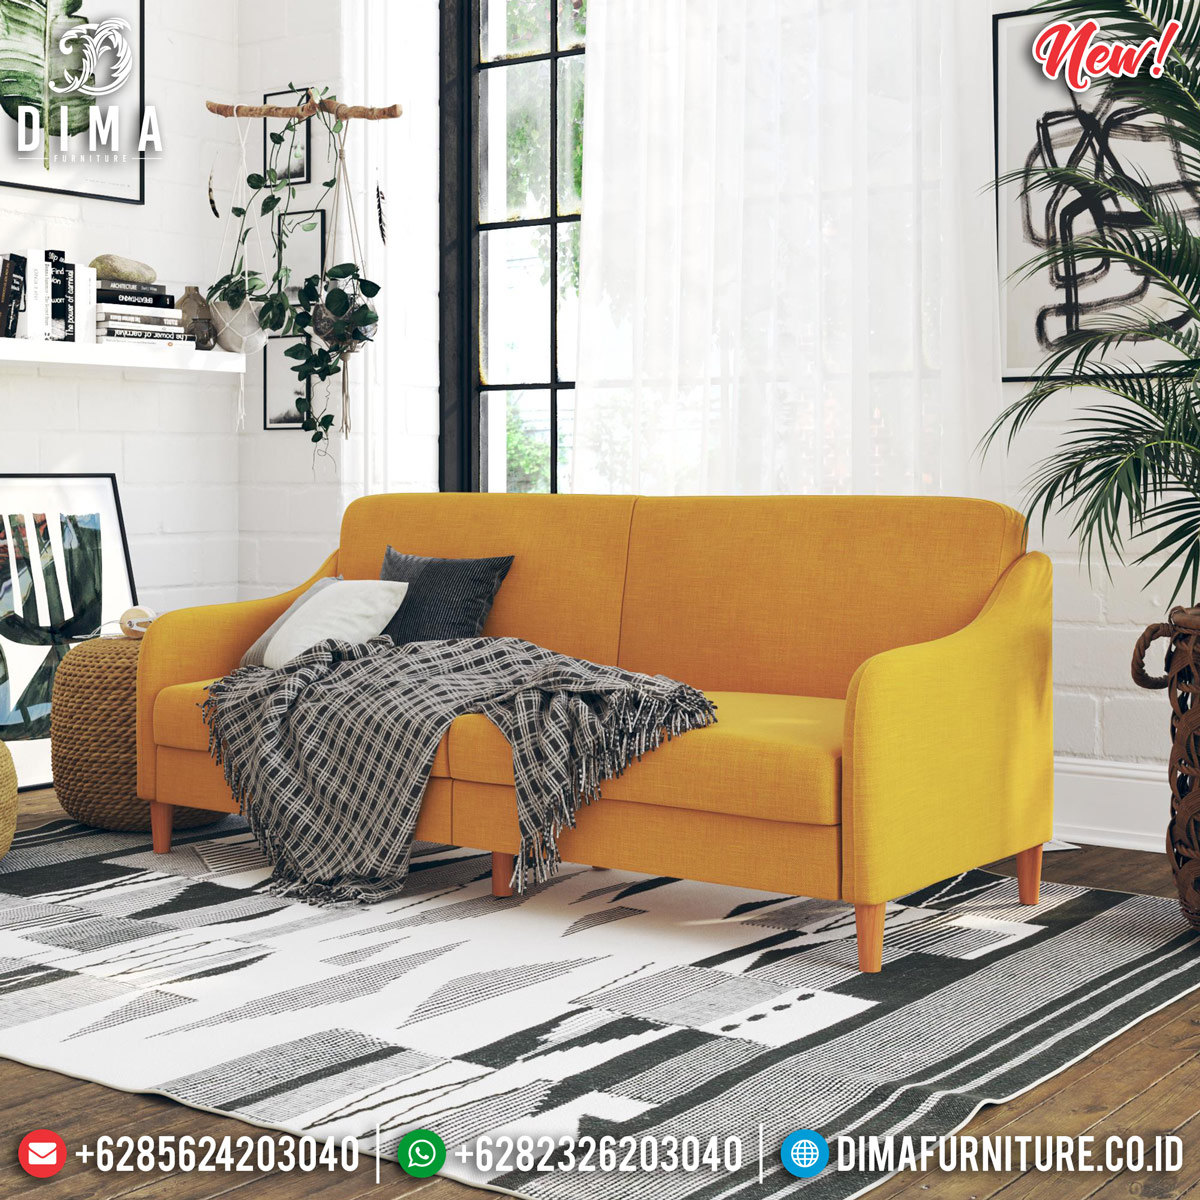 Harga Sofa Minimalis Vintage Epic Design Furniture Jepara TTJ-0854